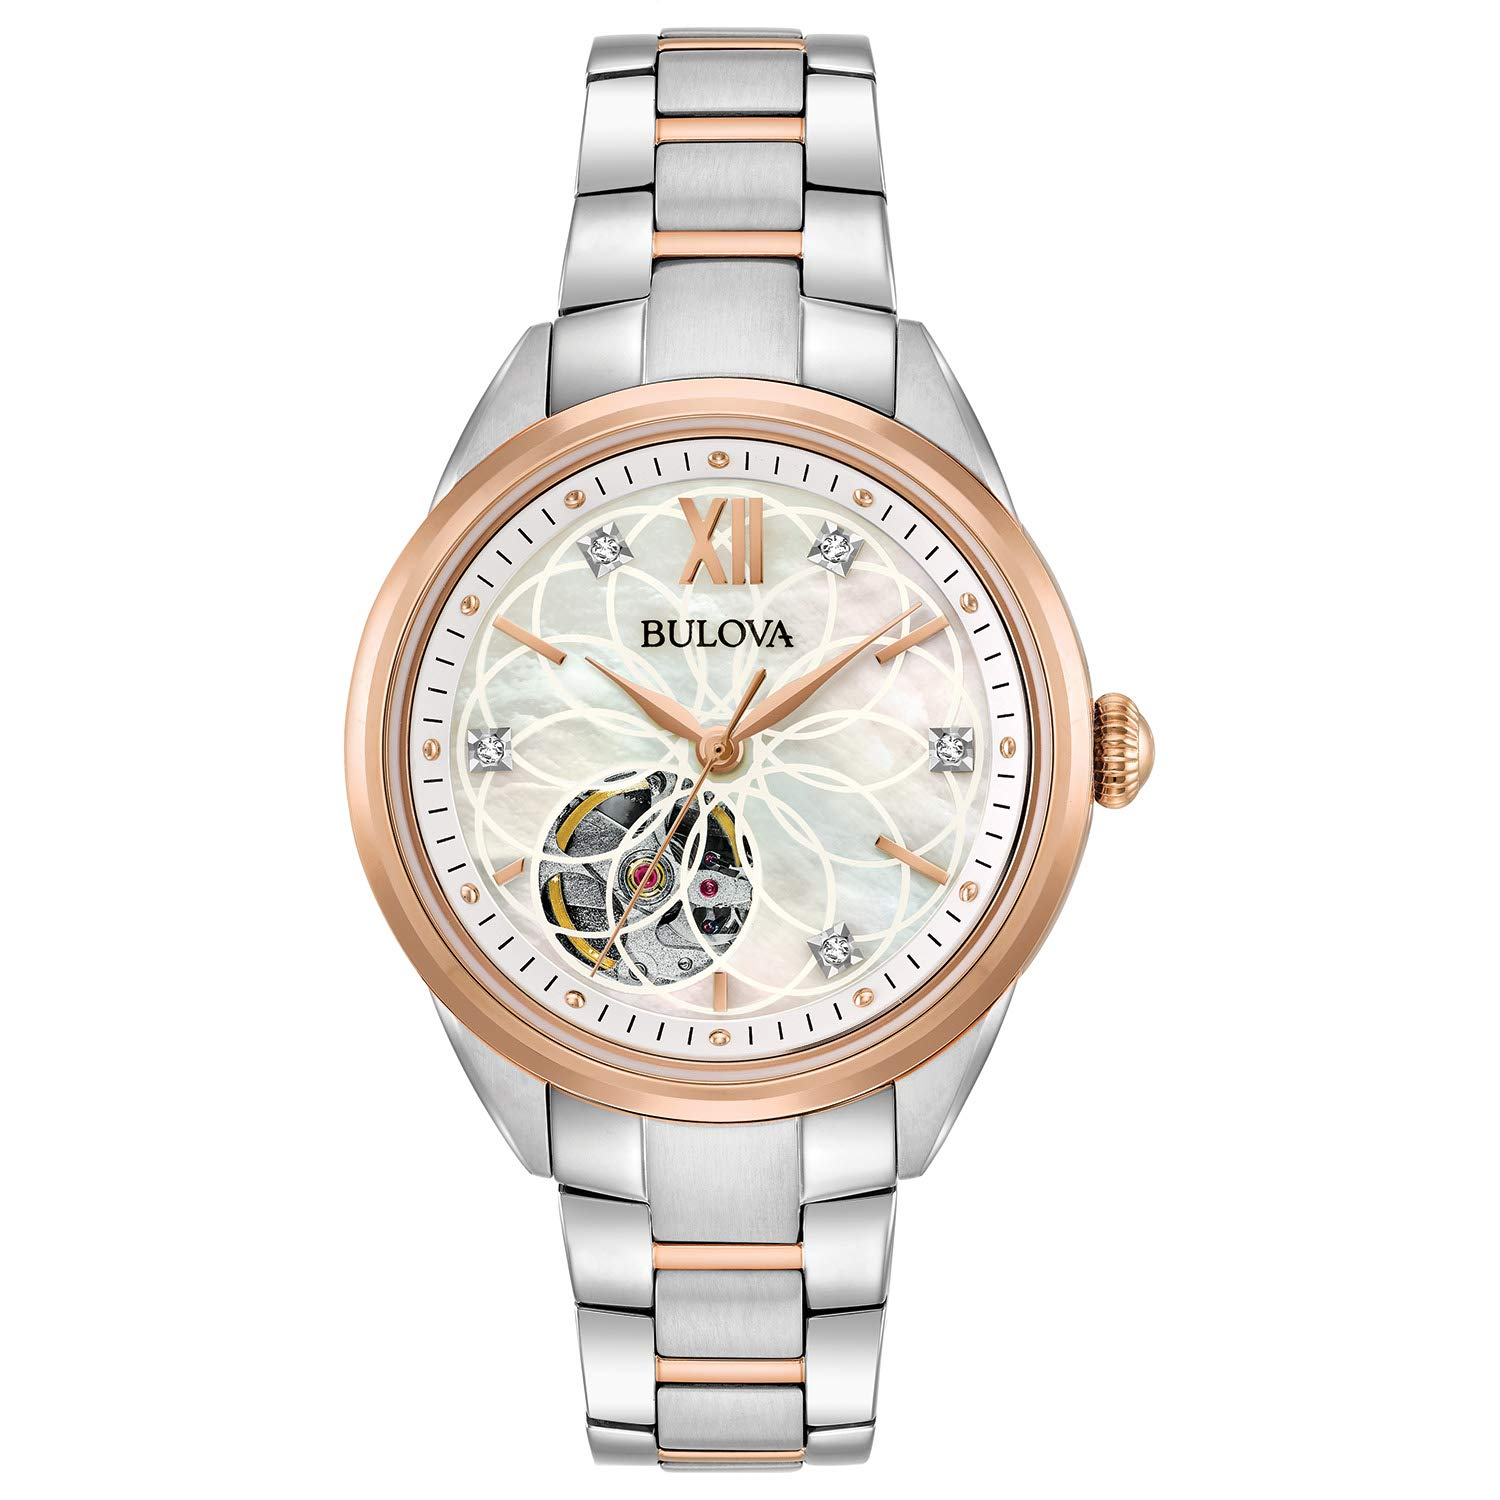 b012b7bb2 Amazon.com: Bulova Women's Automatic-self-Wind Watch with Stainless-Steel  Strap, Two Tone, 15 (Model: 98P170): Watches